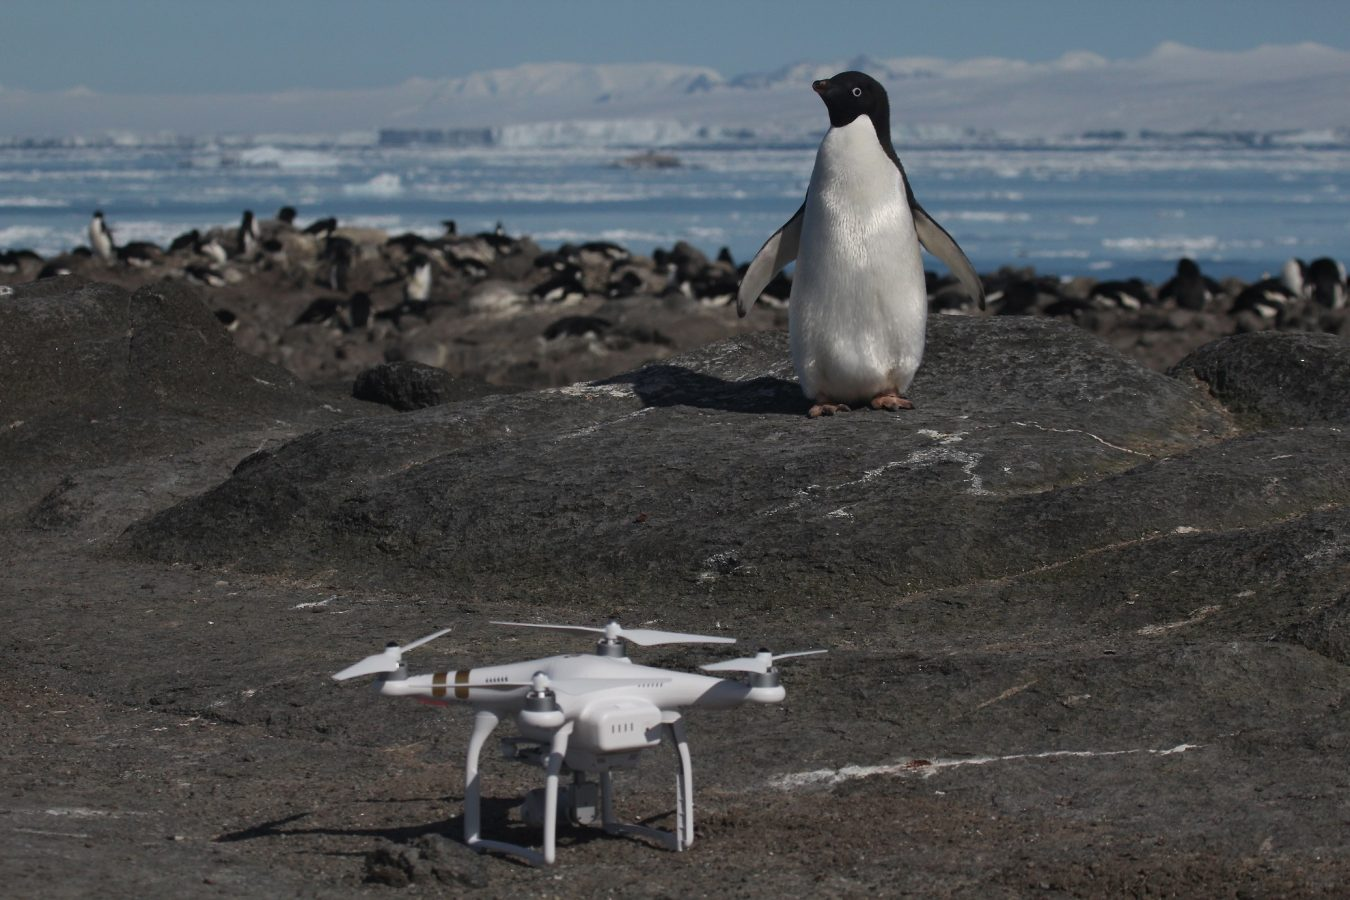 penguin looking at drone